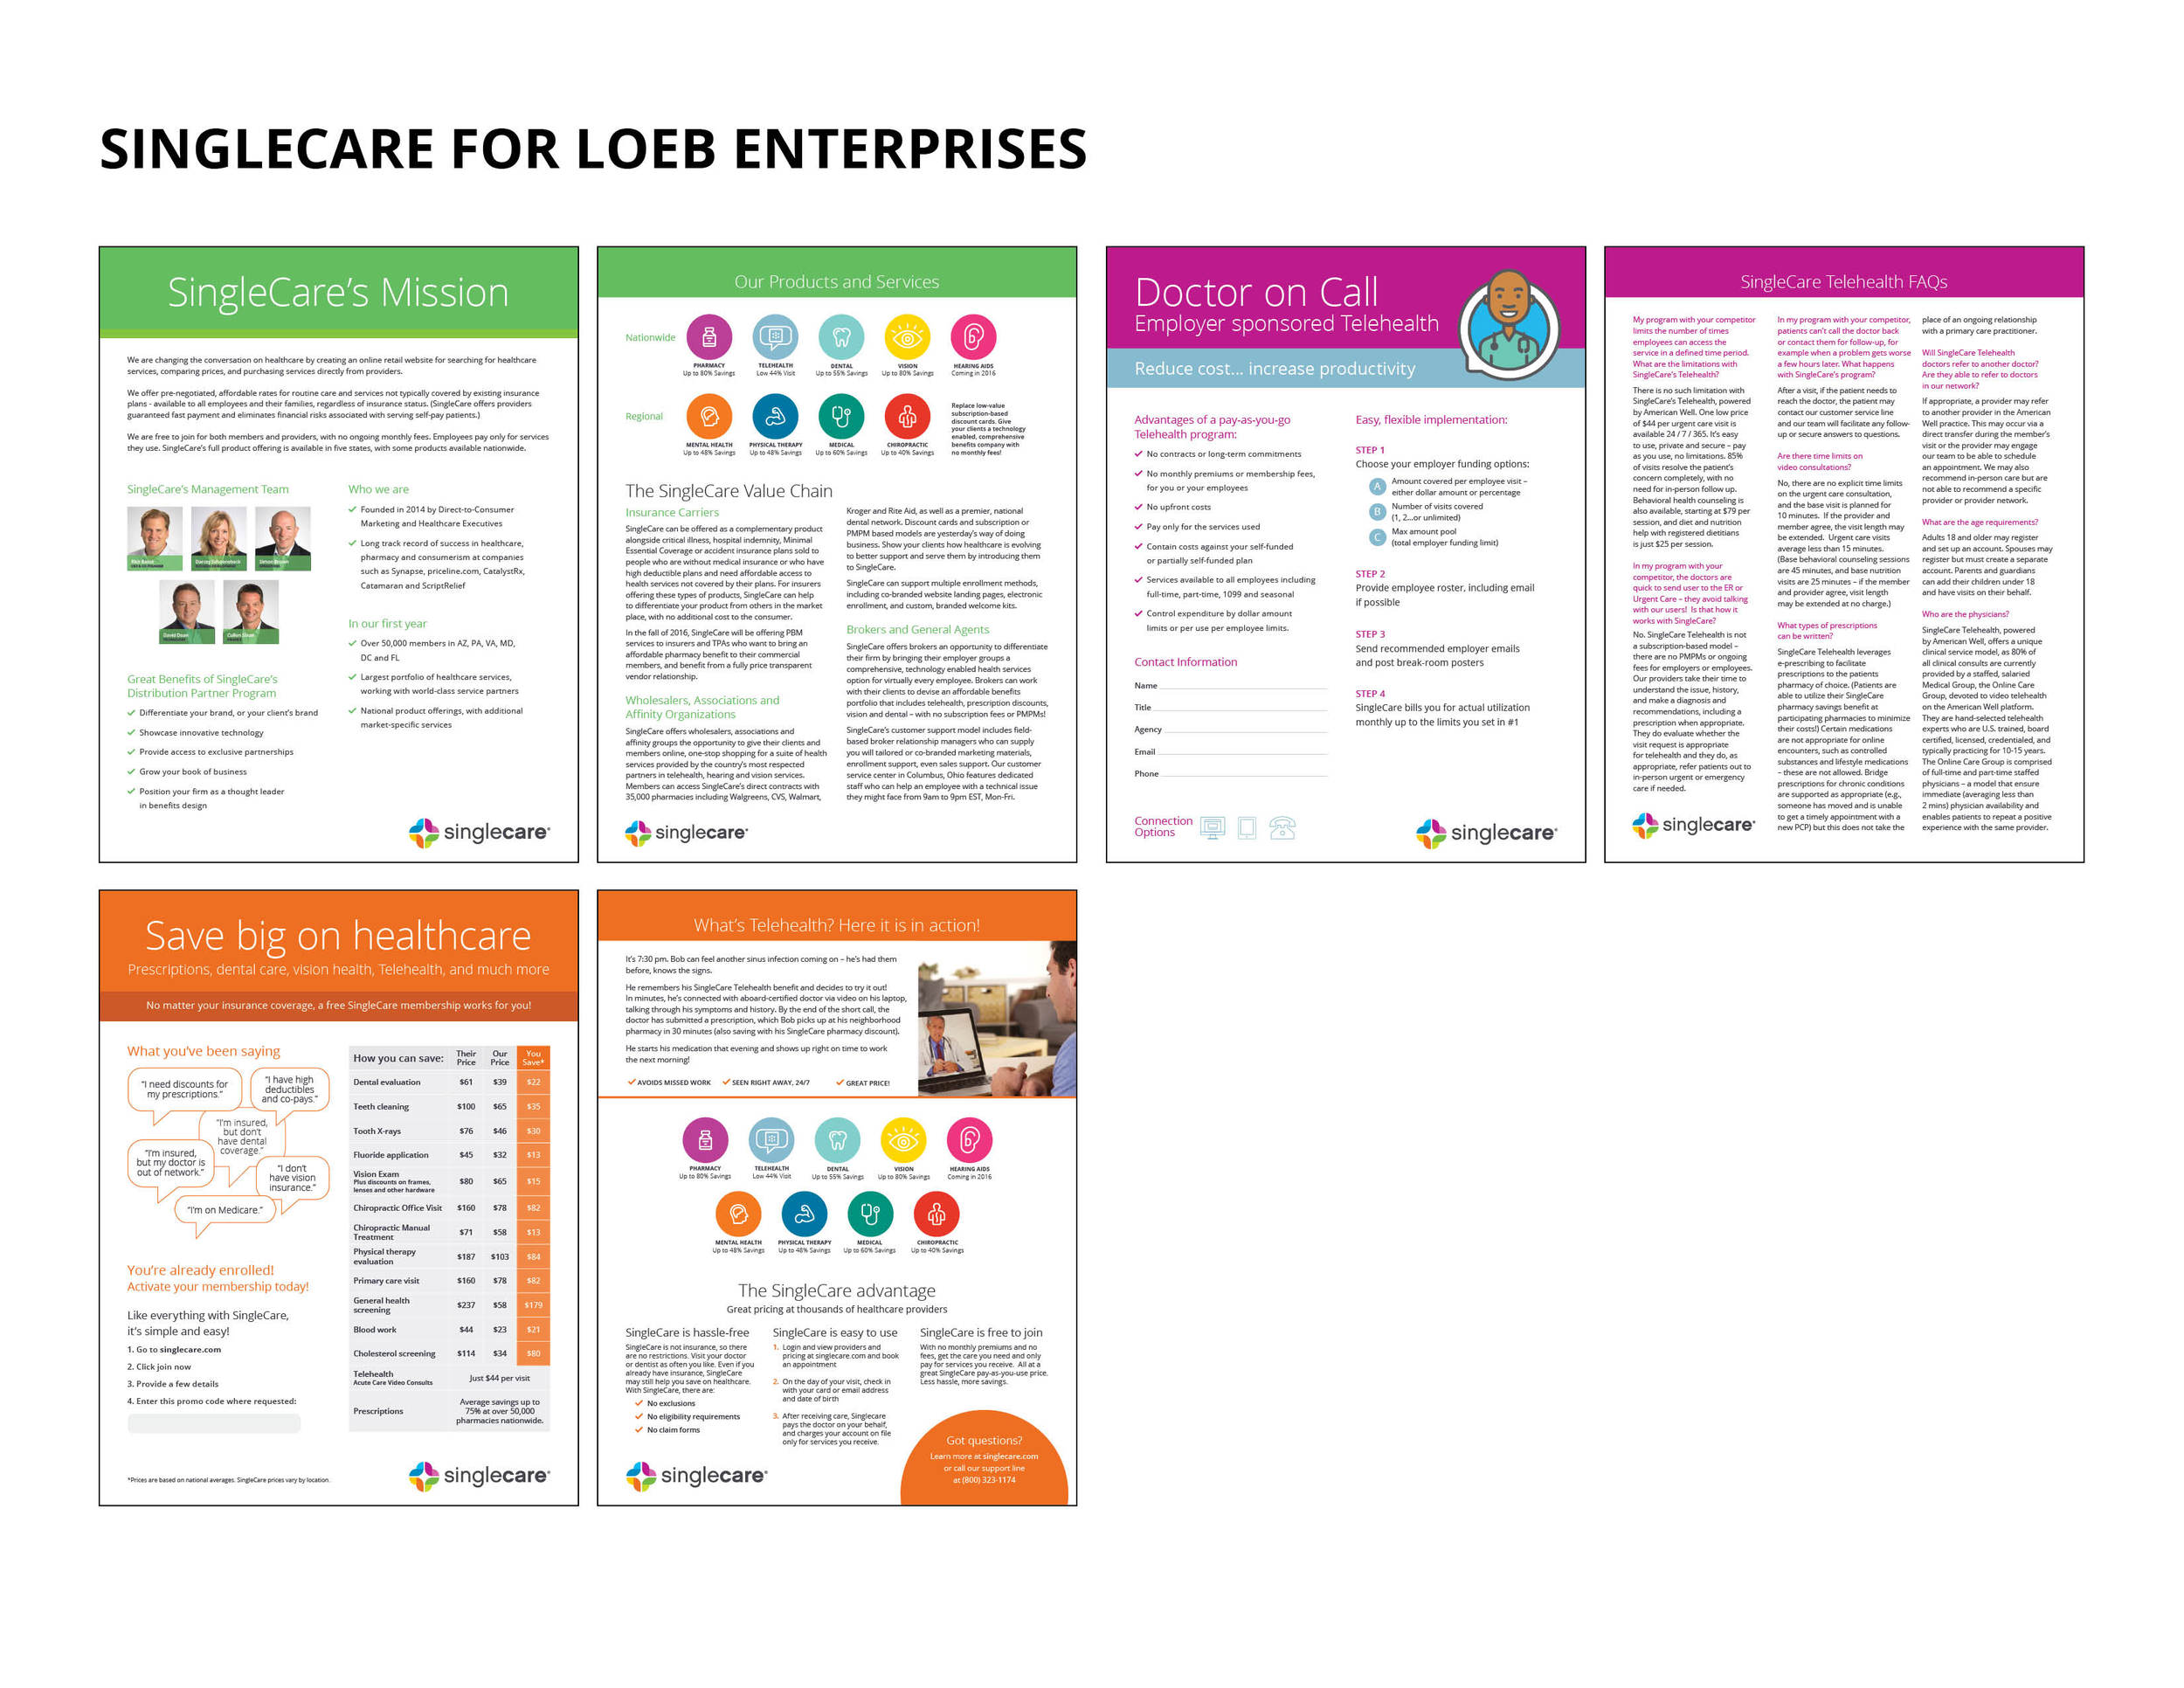 SingleCare for Loeb Enterprises